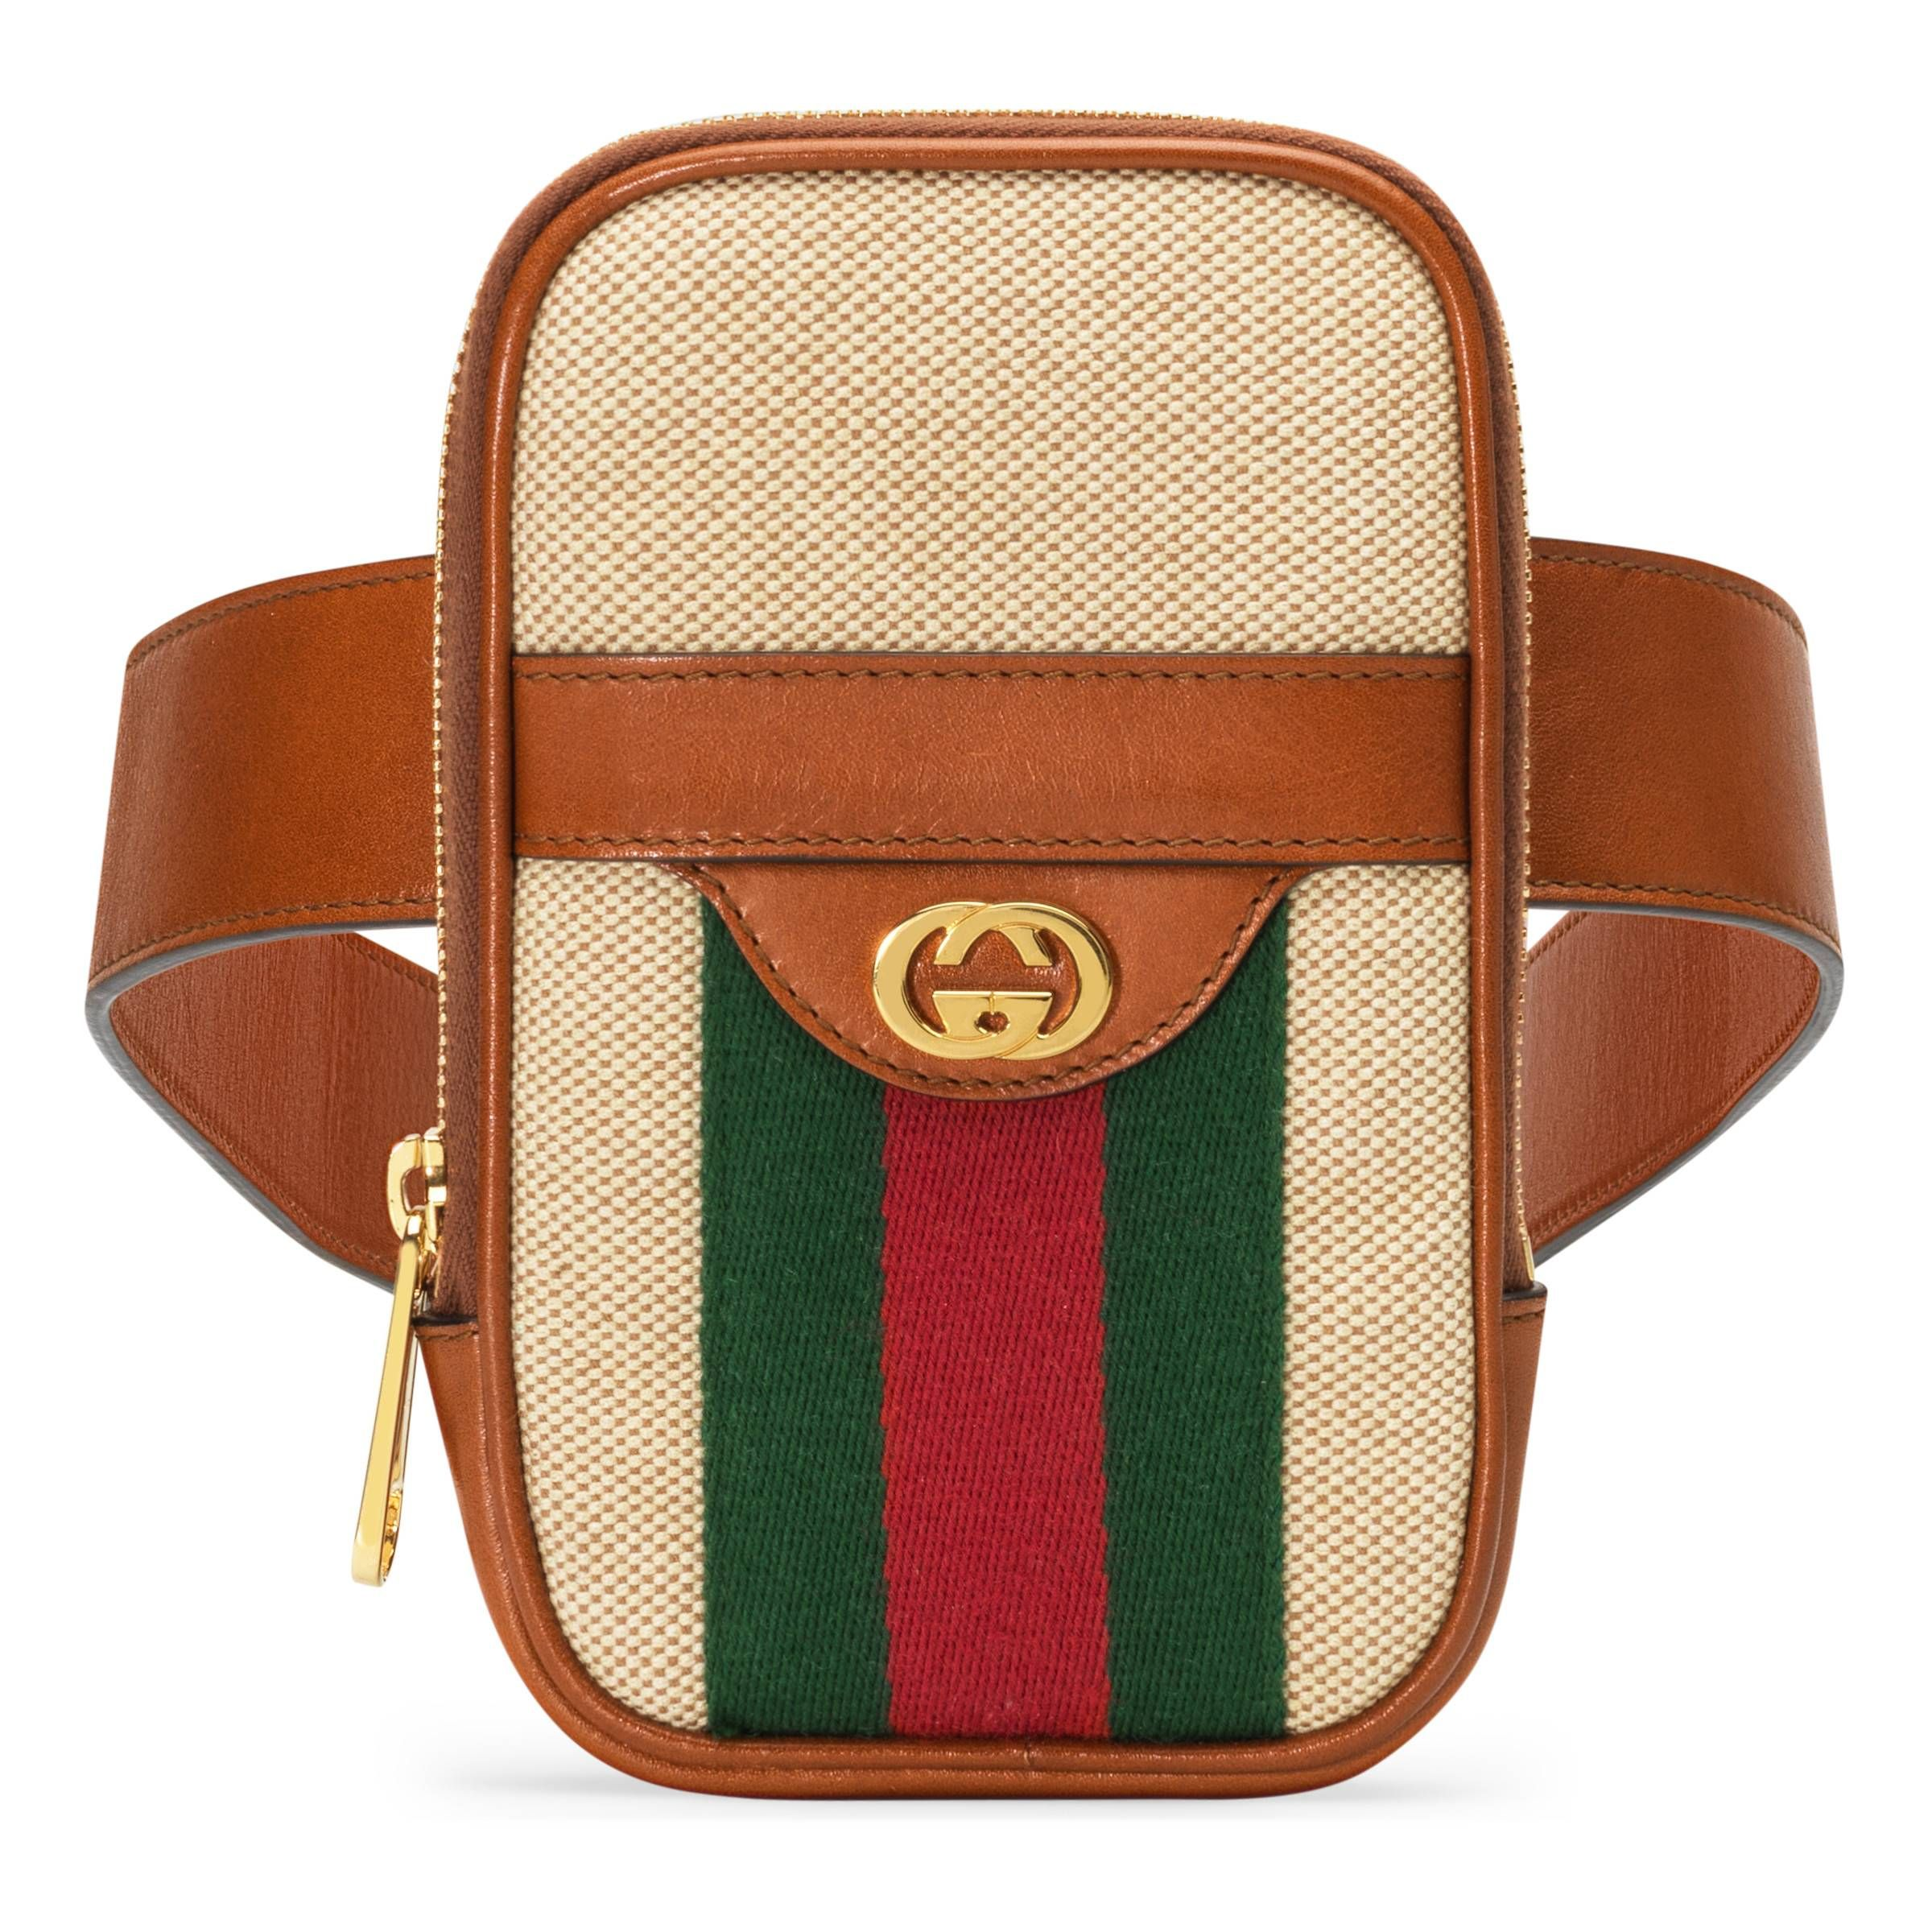 new arrival ed3b6 aa710 GUCCI VINTAGE CANVAS BELTED IPHONE CASE. #gucci | Gucci in 2019 ...